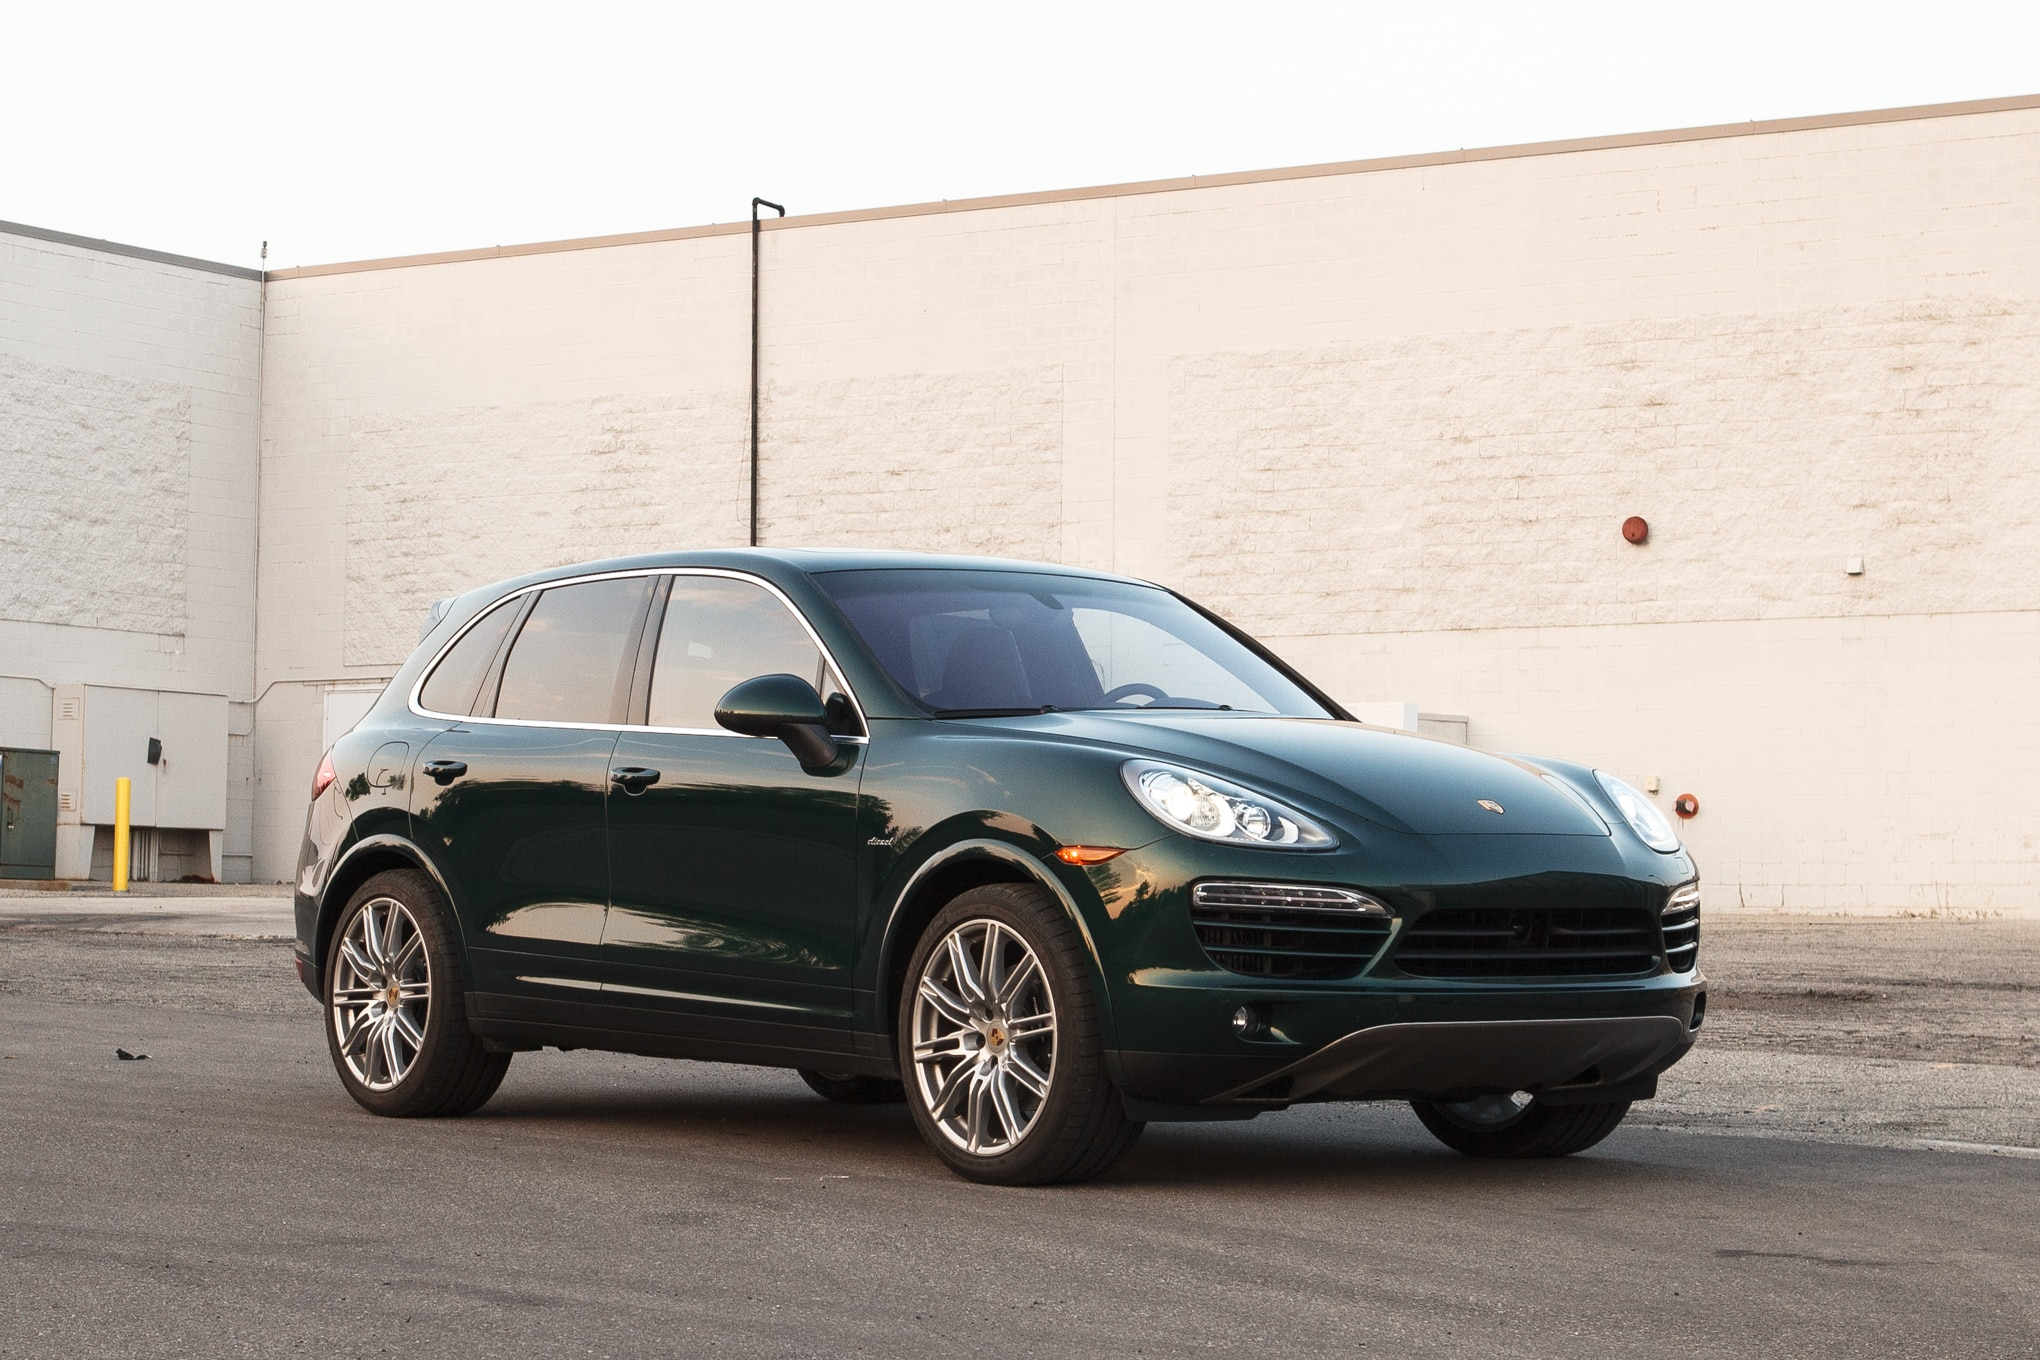 2013 Porsche Cayenne Diesel Front Right View 11